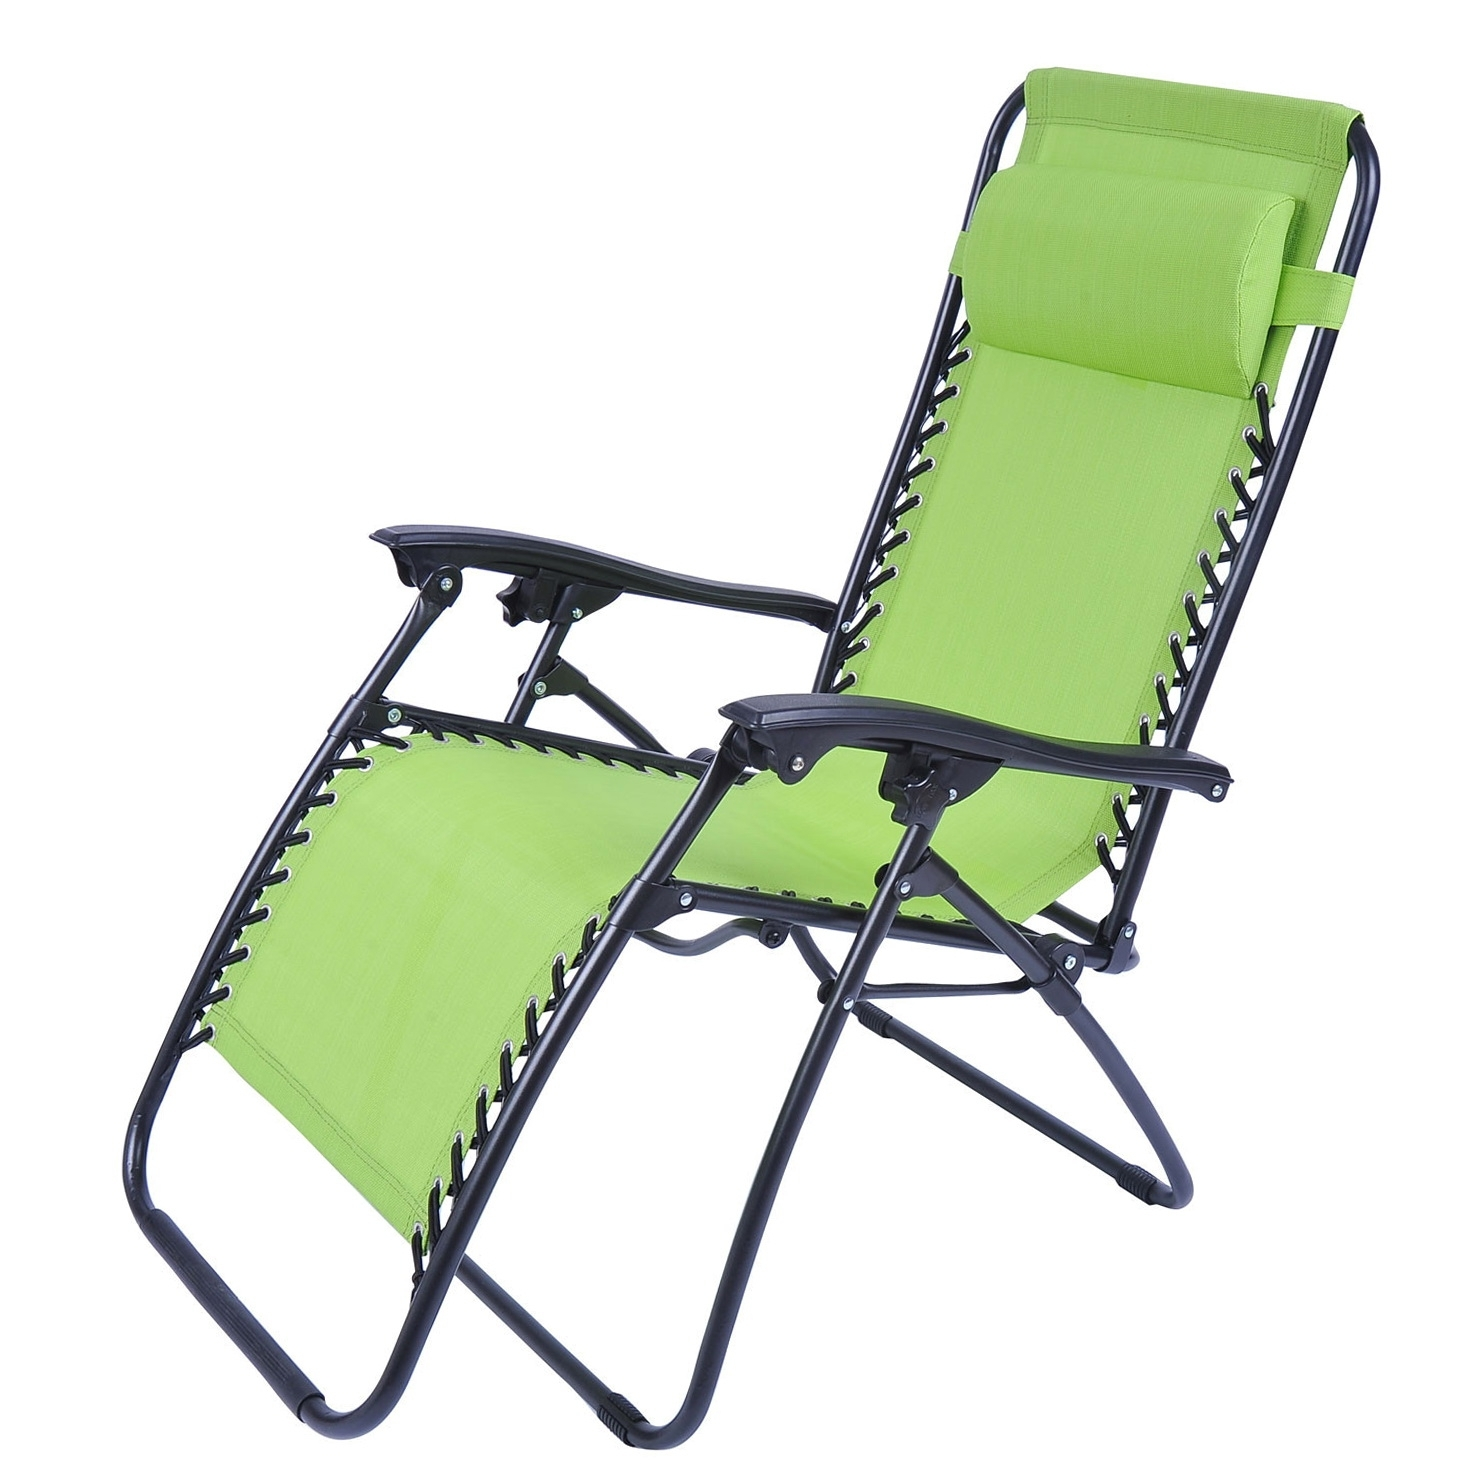 2017 Long Beach Lounge Chairs • Lounge Chairs Ideas With Chaise Lounge Chairs At Kohls (View 1 of 15)